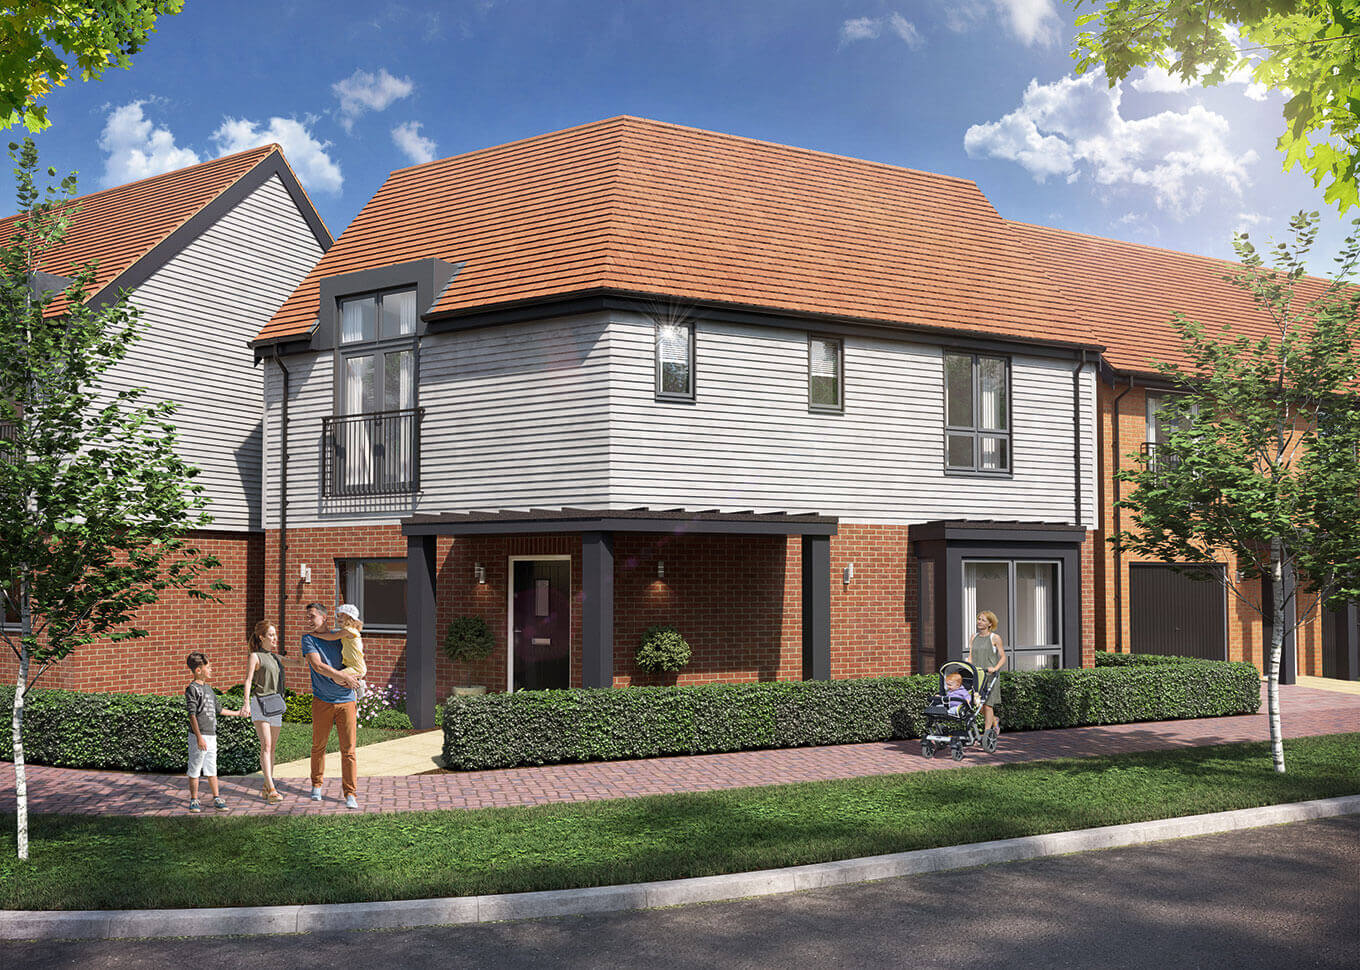 Ashford Paris Houses For Sale In Ashford Kent Chilmington Hodson Developments